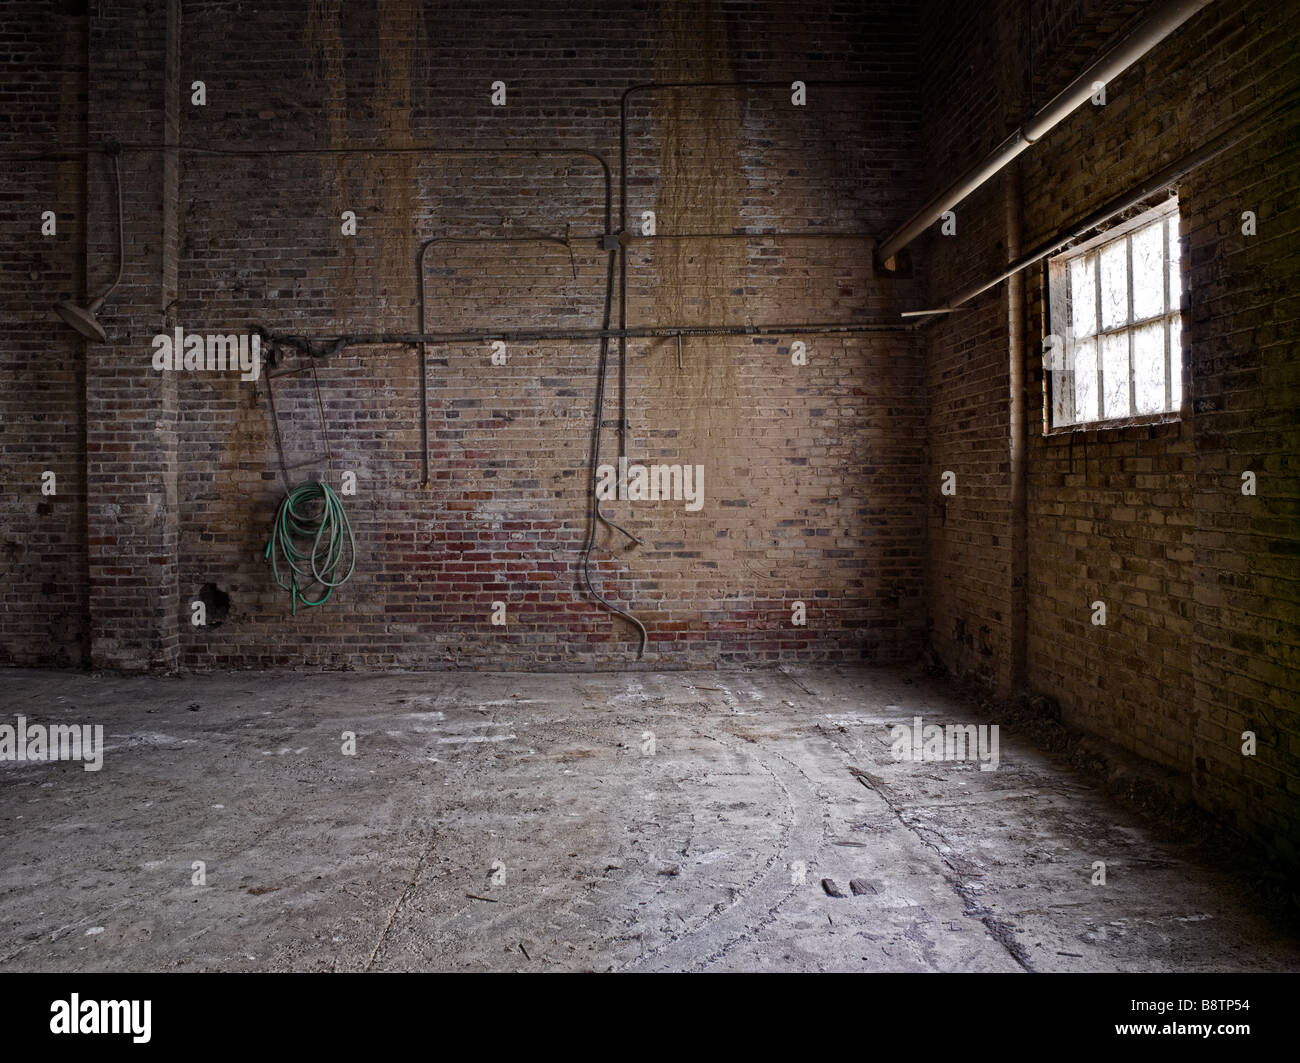 Empty Industrial Room With Light